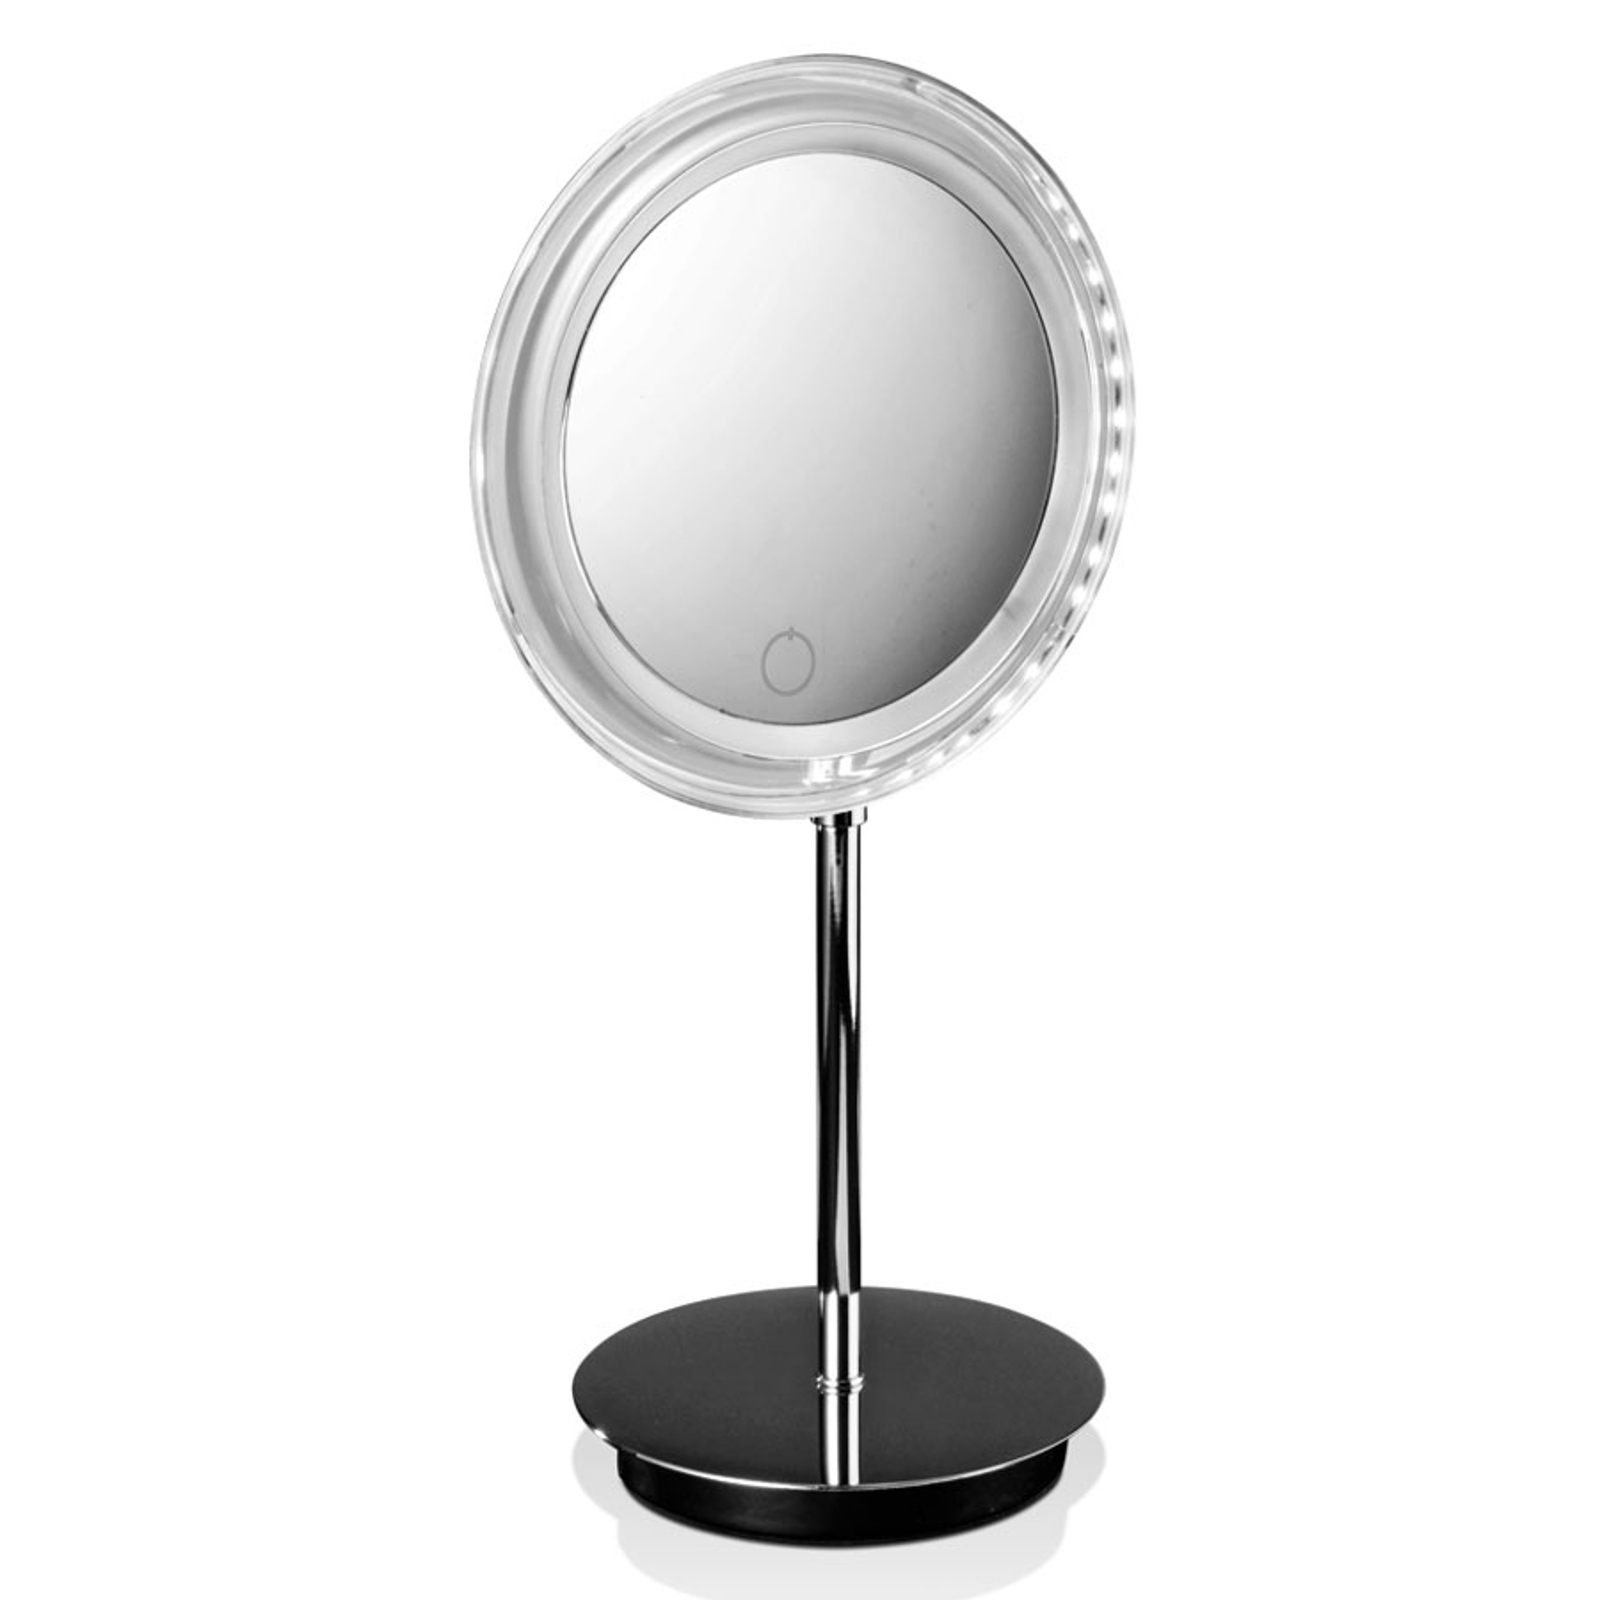 Decor Walther BS 15 Touch miroir mural LED rond